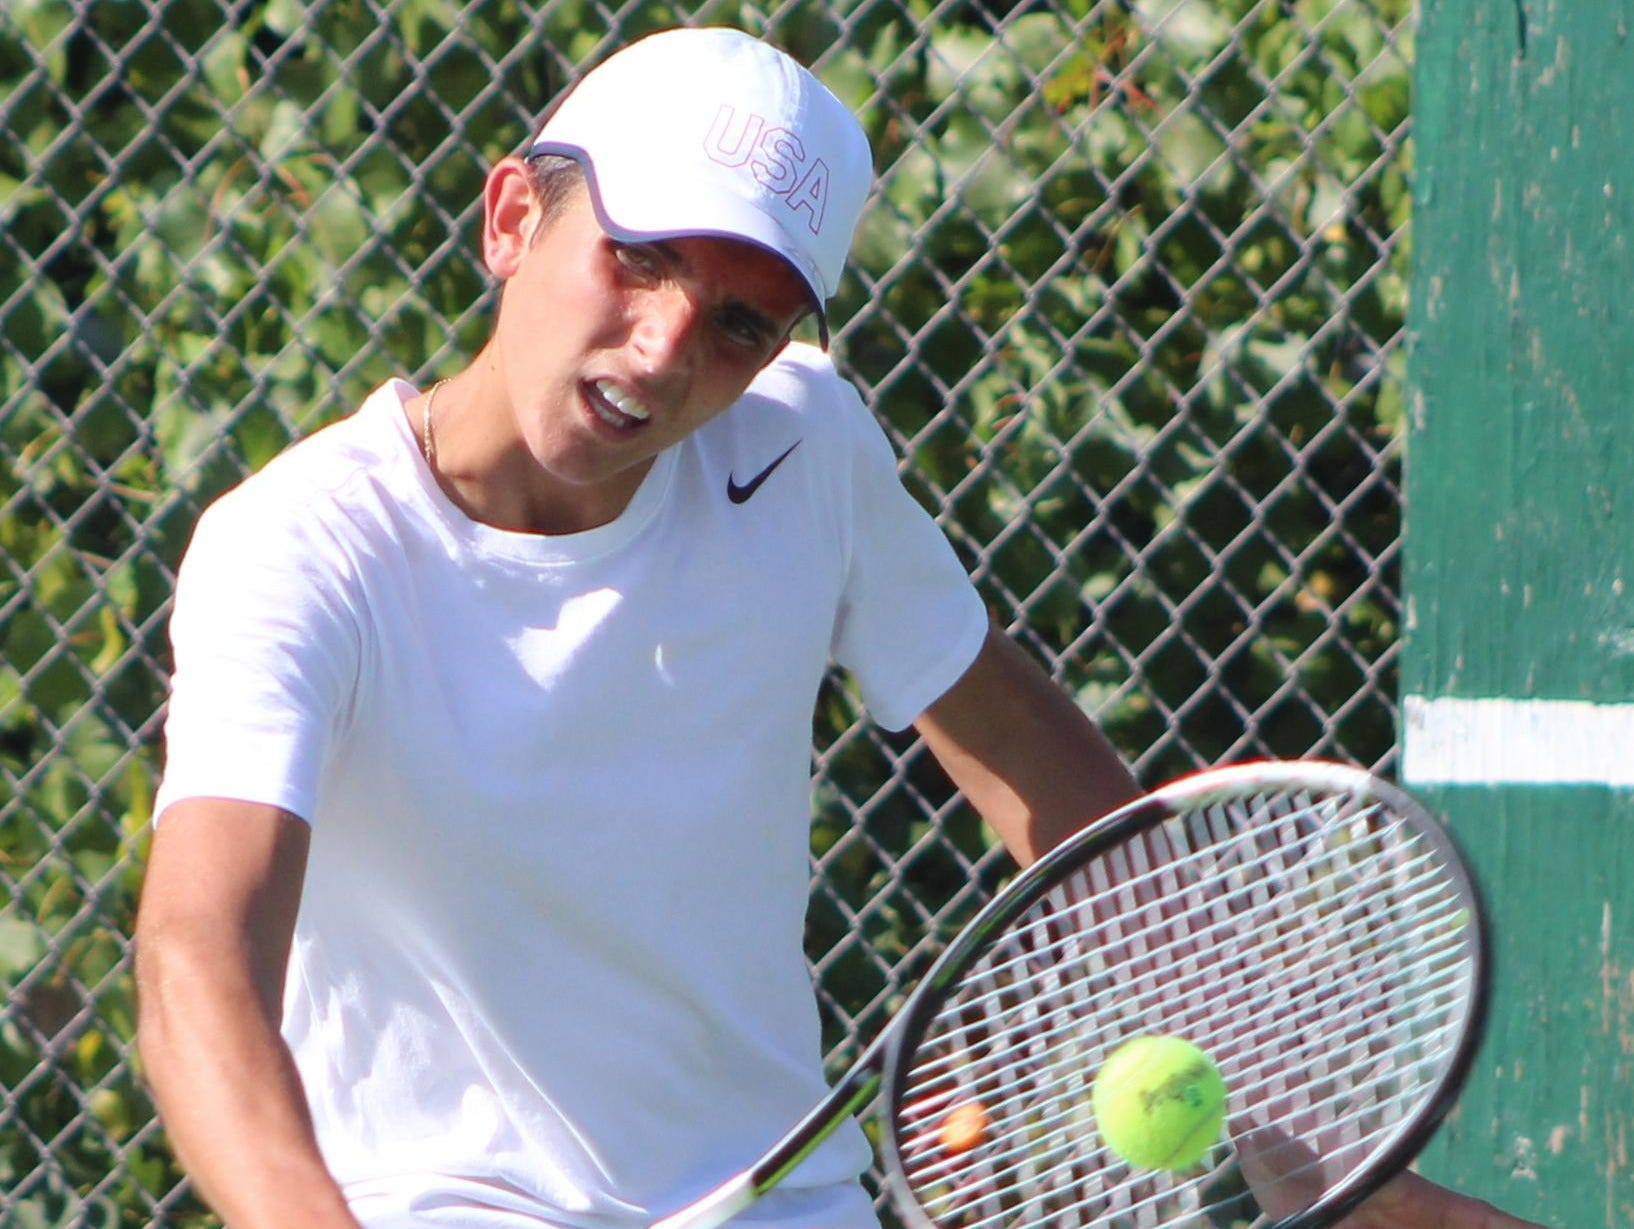 Freshman Gabe Vidinas helped lead Groves to a 6-3 victory over district rival Seaholm Monday with a straight-set win at No. 1 flight singles.